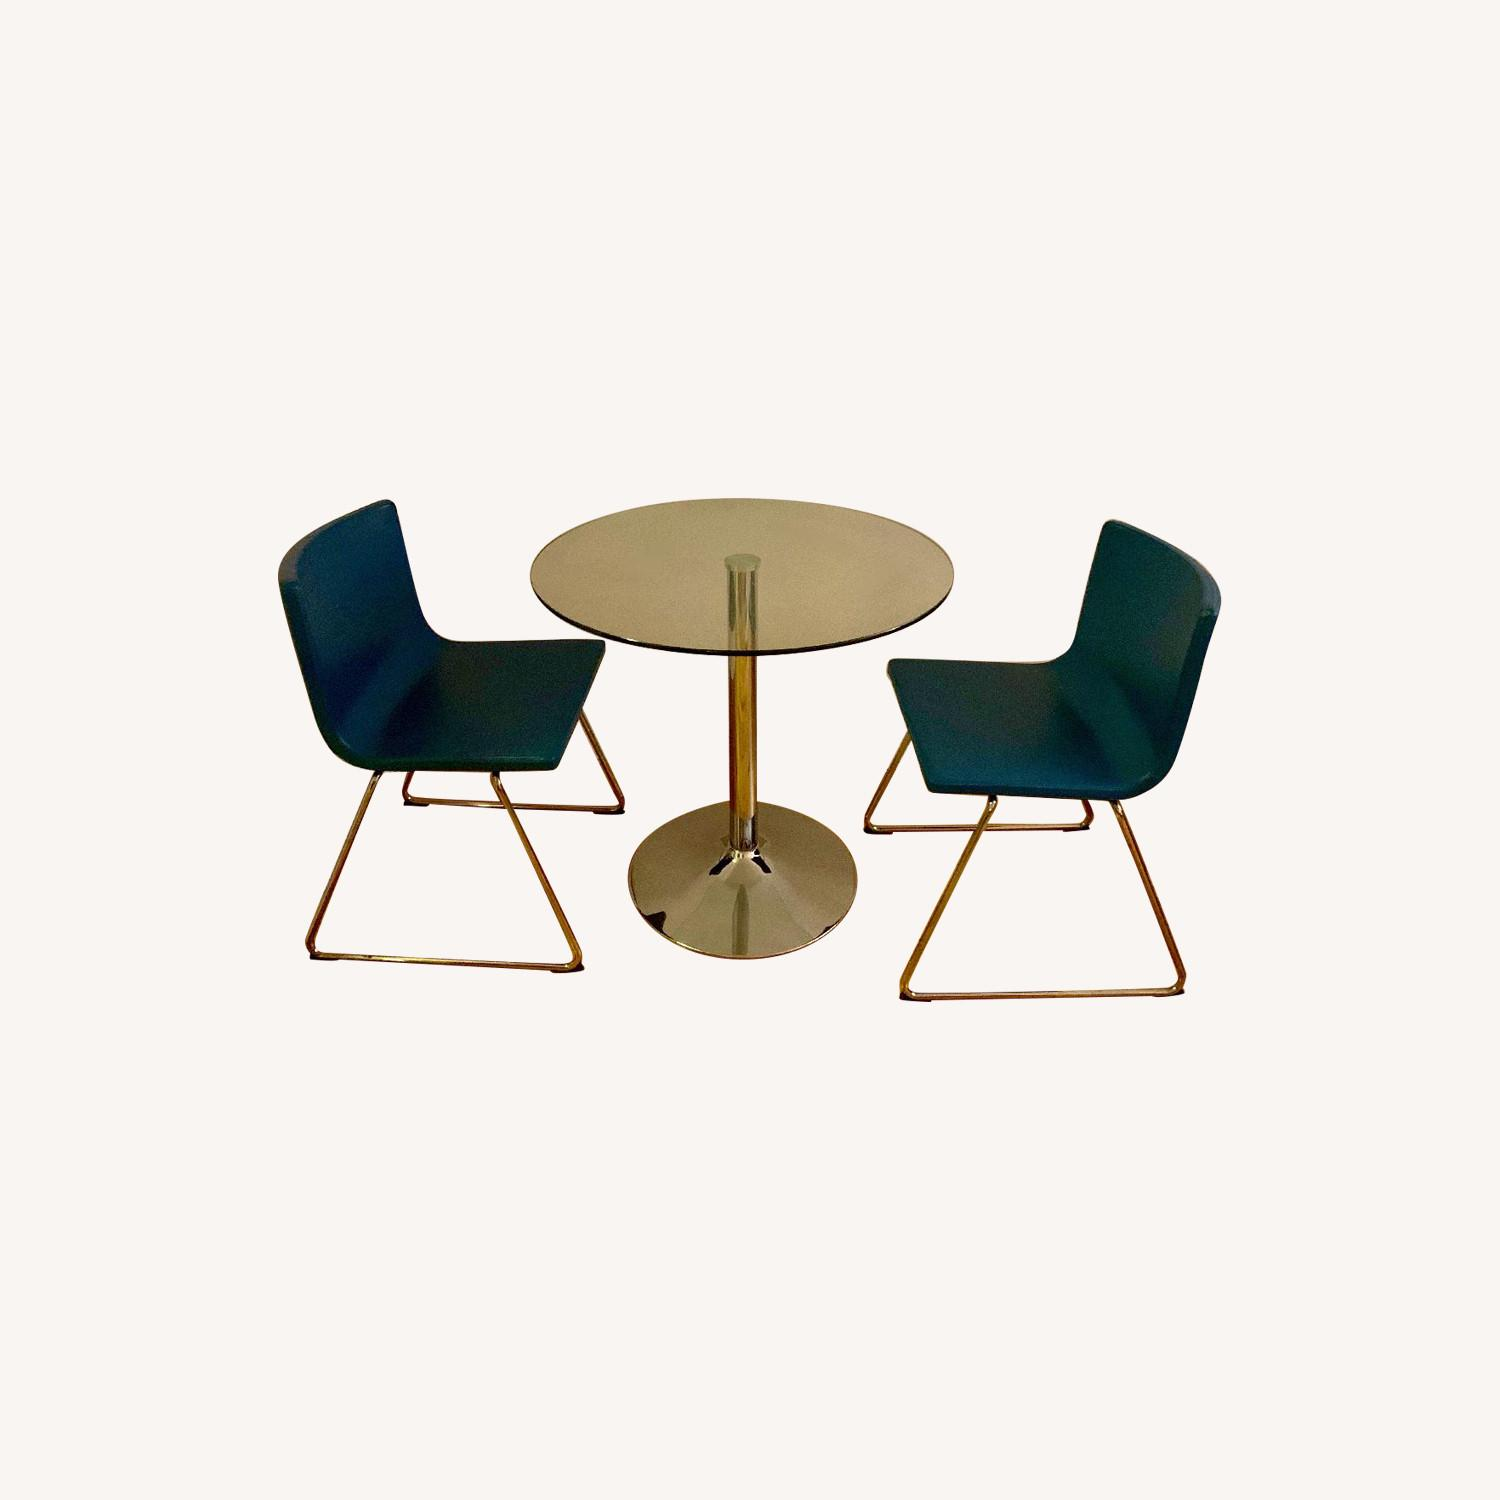 Round Glass Dining Table w/ 2 Ikea Chairs - image-0